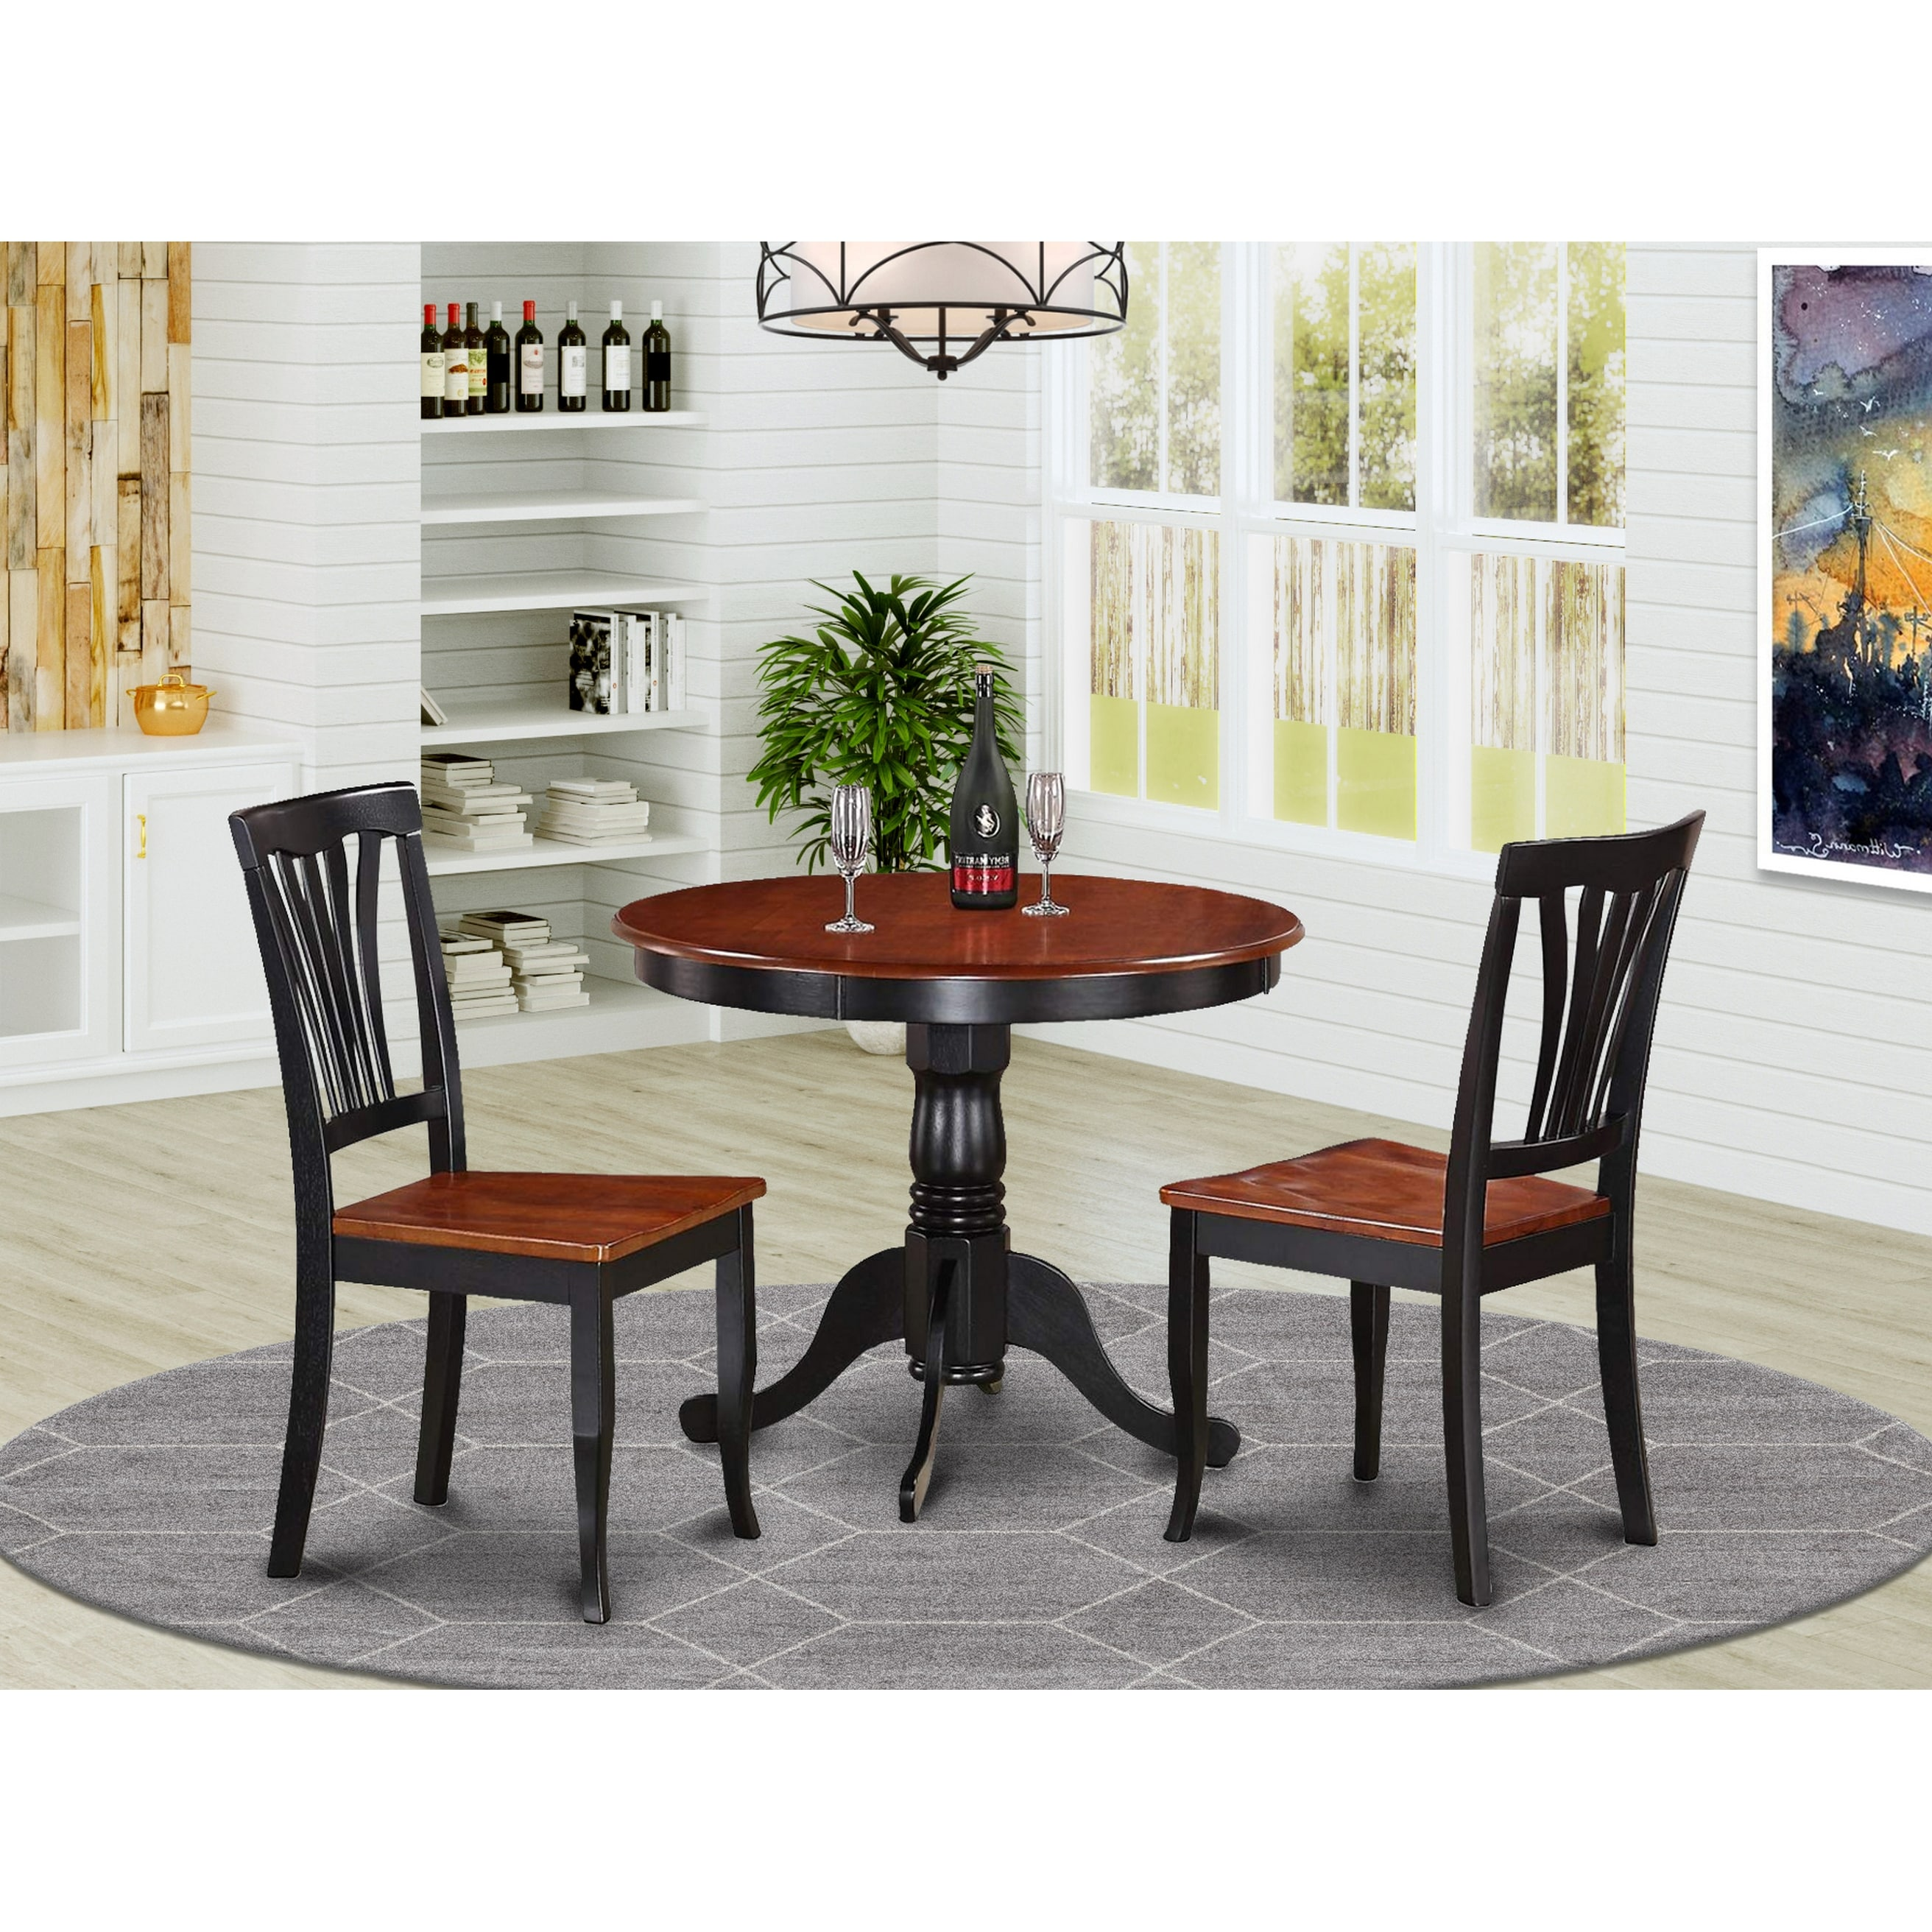 9 piece Kitchen Nook Dining Set   Small Kitchen Table and 9 Kitchen Chairs